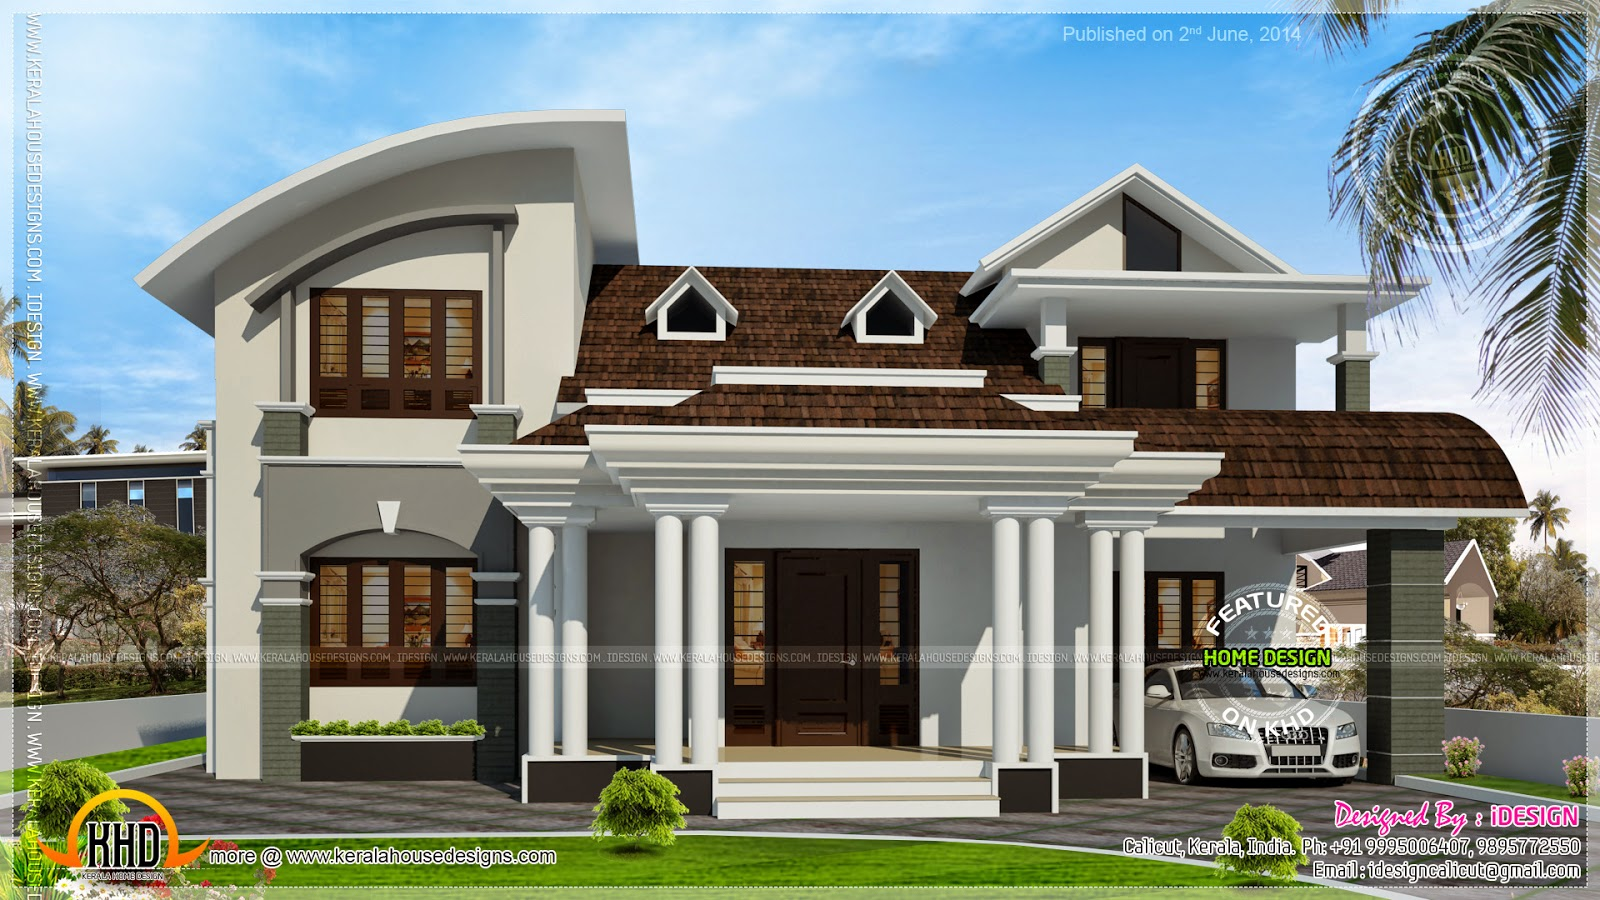 Siddu buzz online kerala home design for Window design elevation